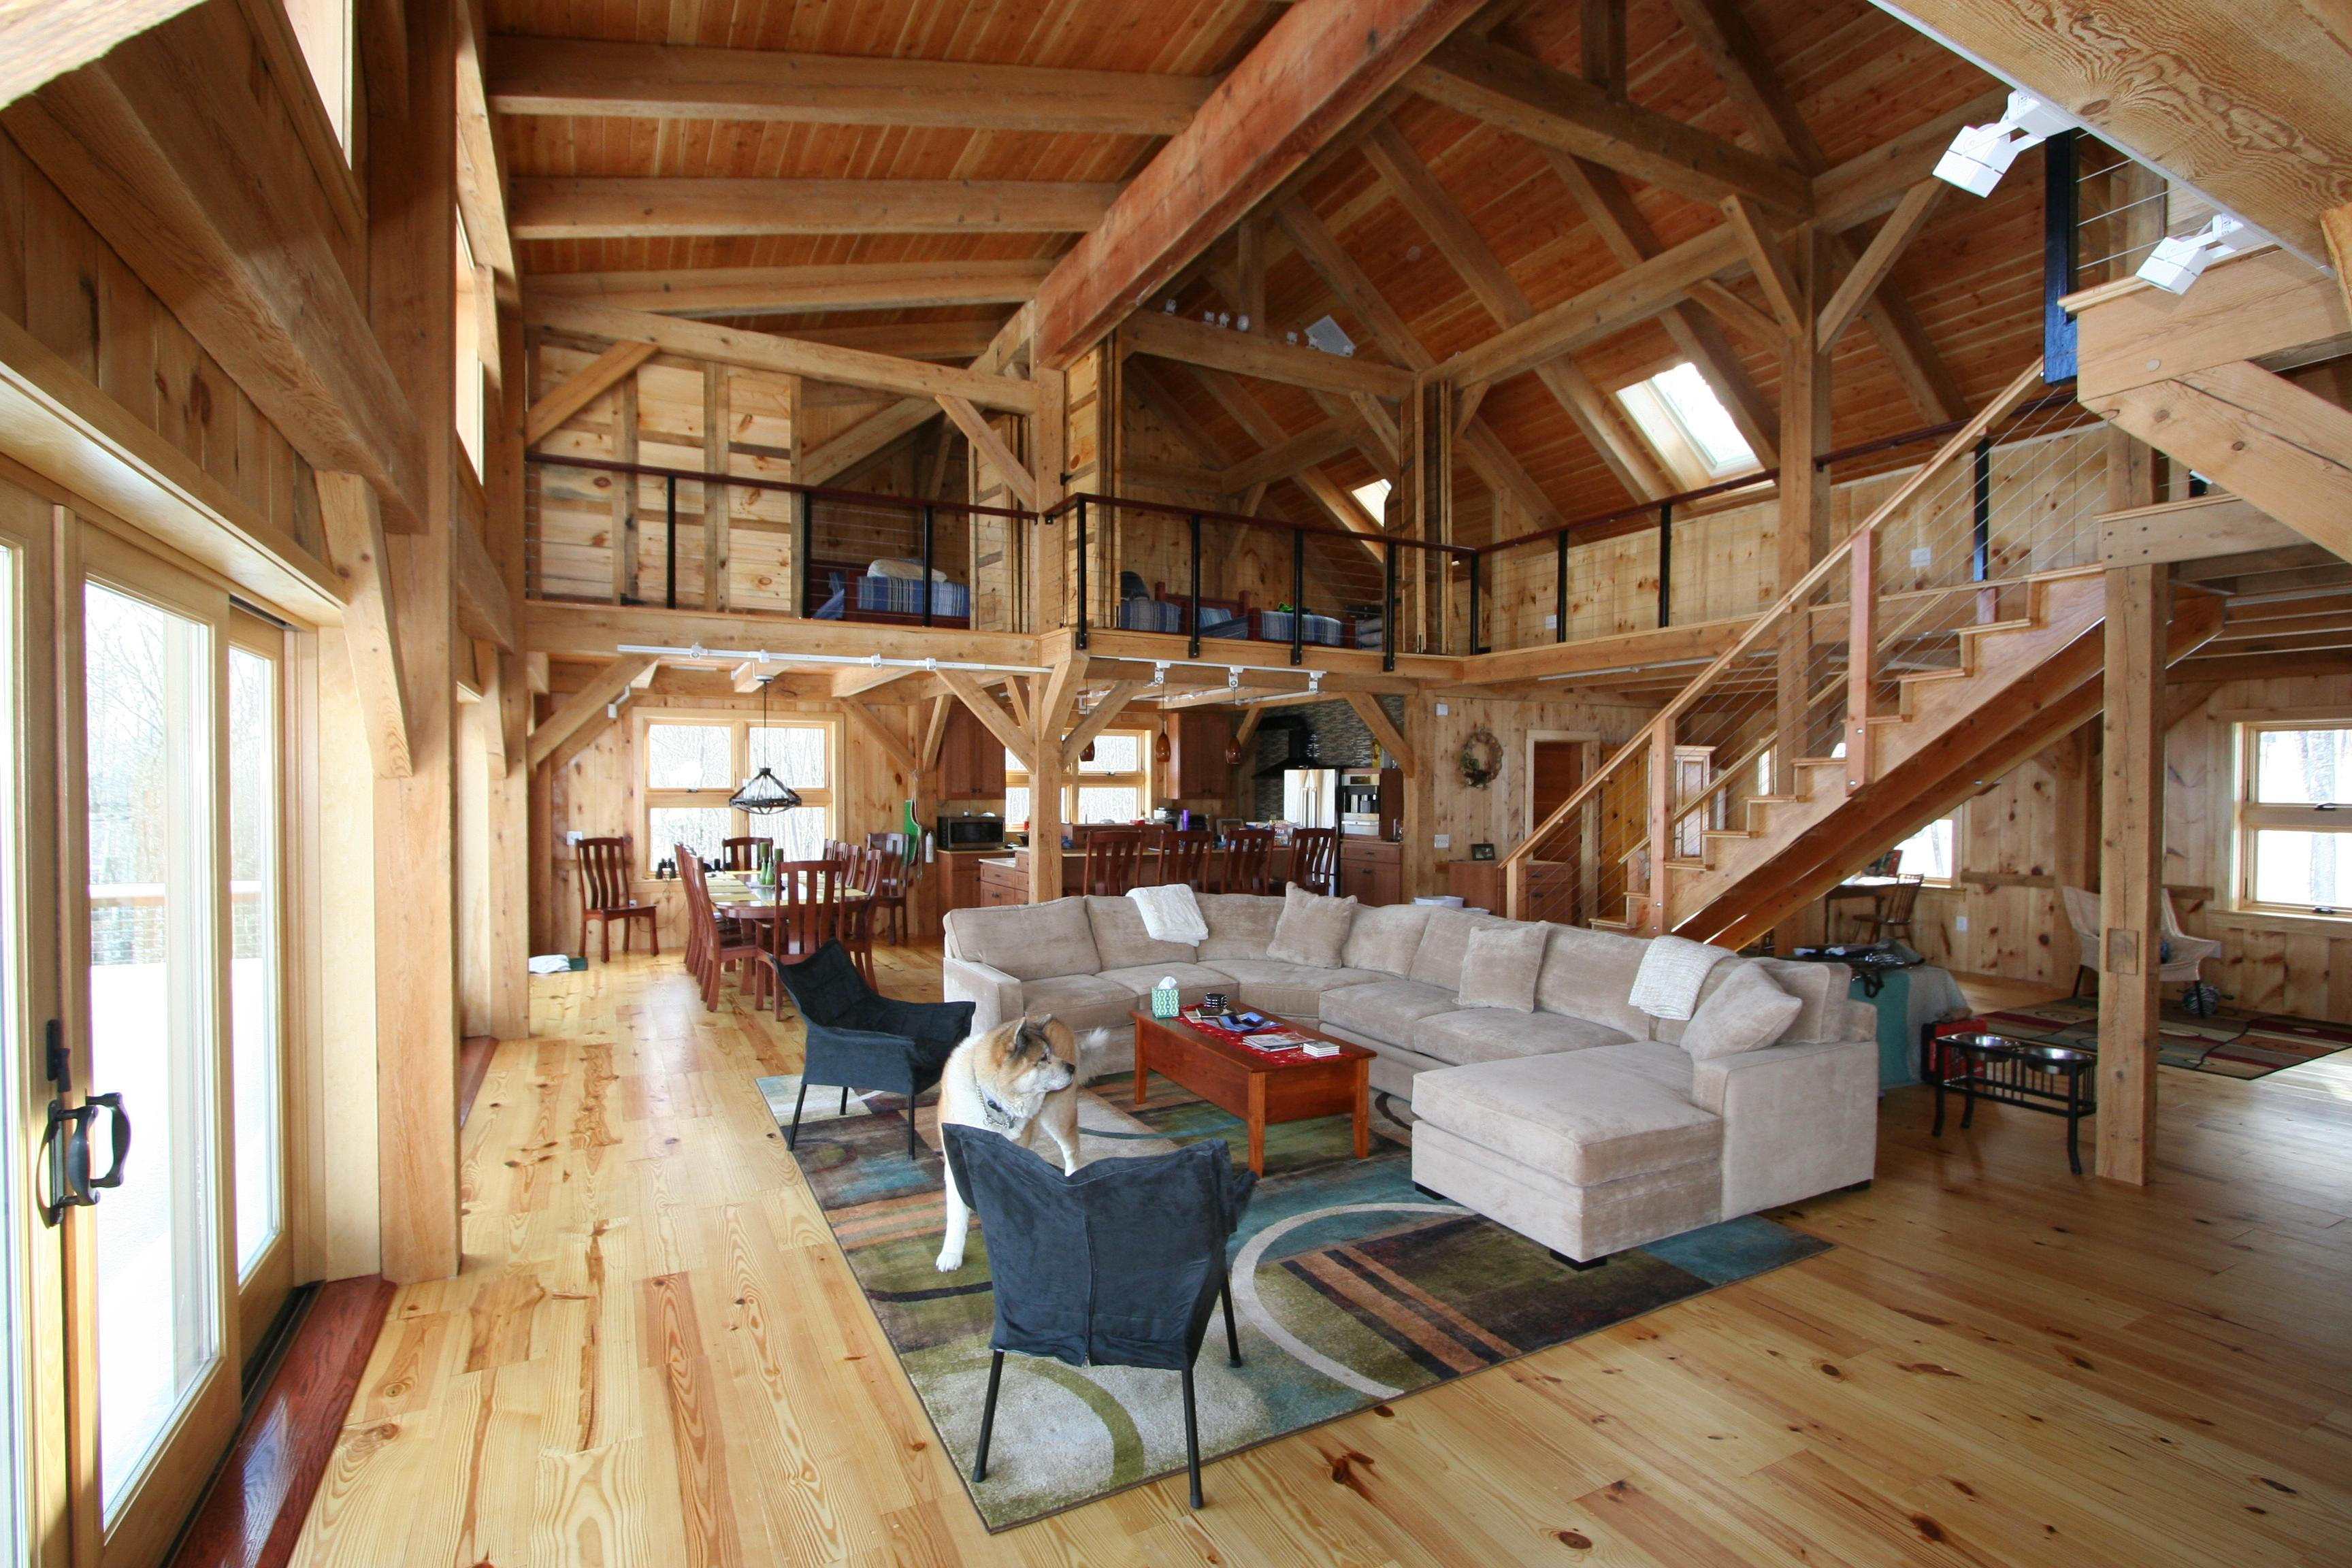 Living Room Barn Designs Ideas barn homes barns and home interiors on pinterest